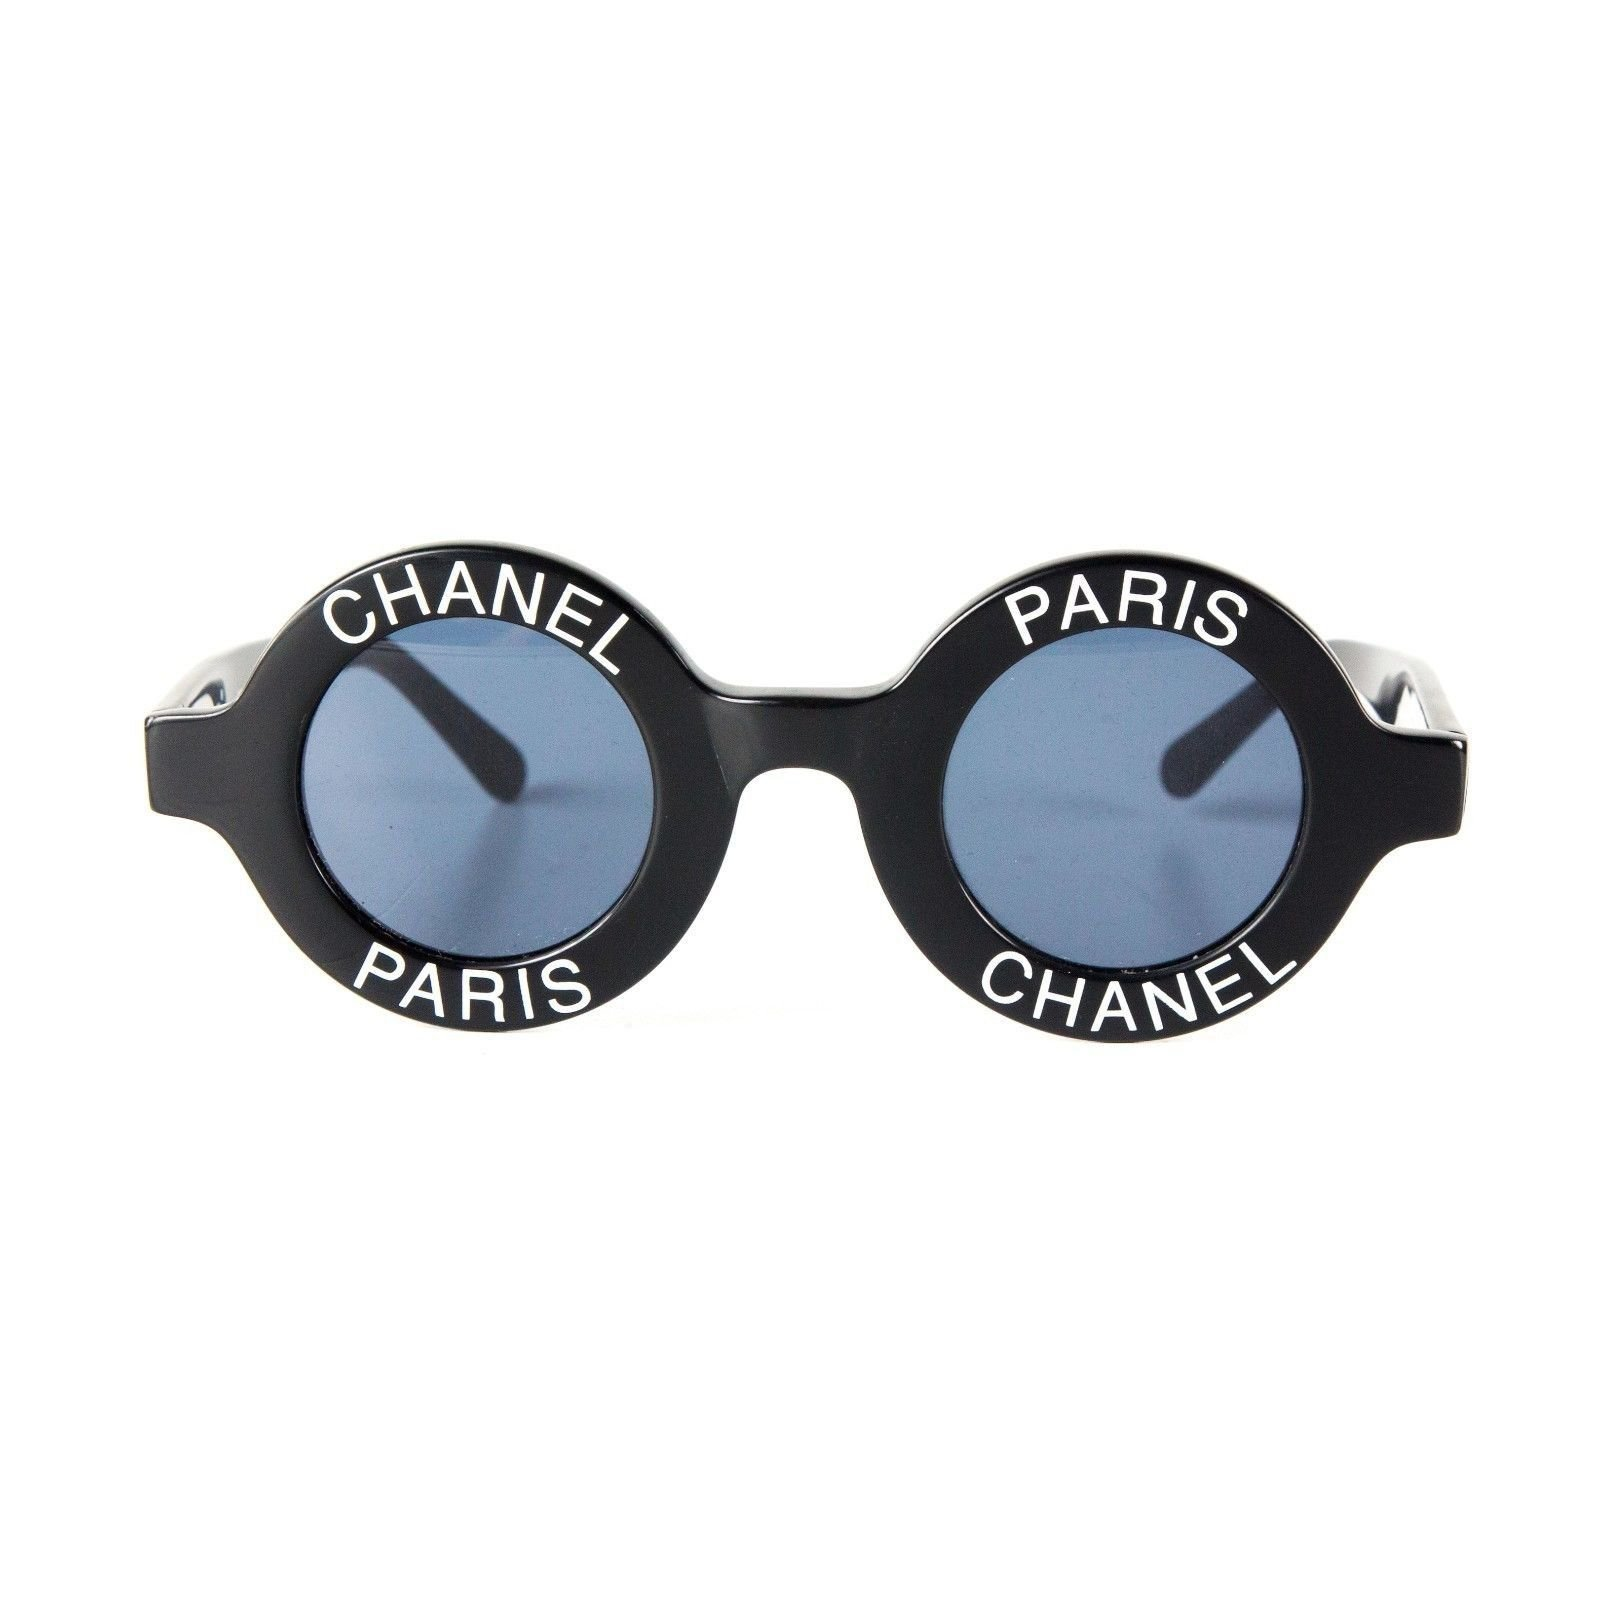 41de36274a Chanel Chanel -Vintage Round Logo Sunglasses Sunglasses Other Other  ref.37099